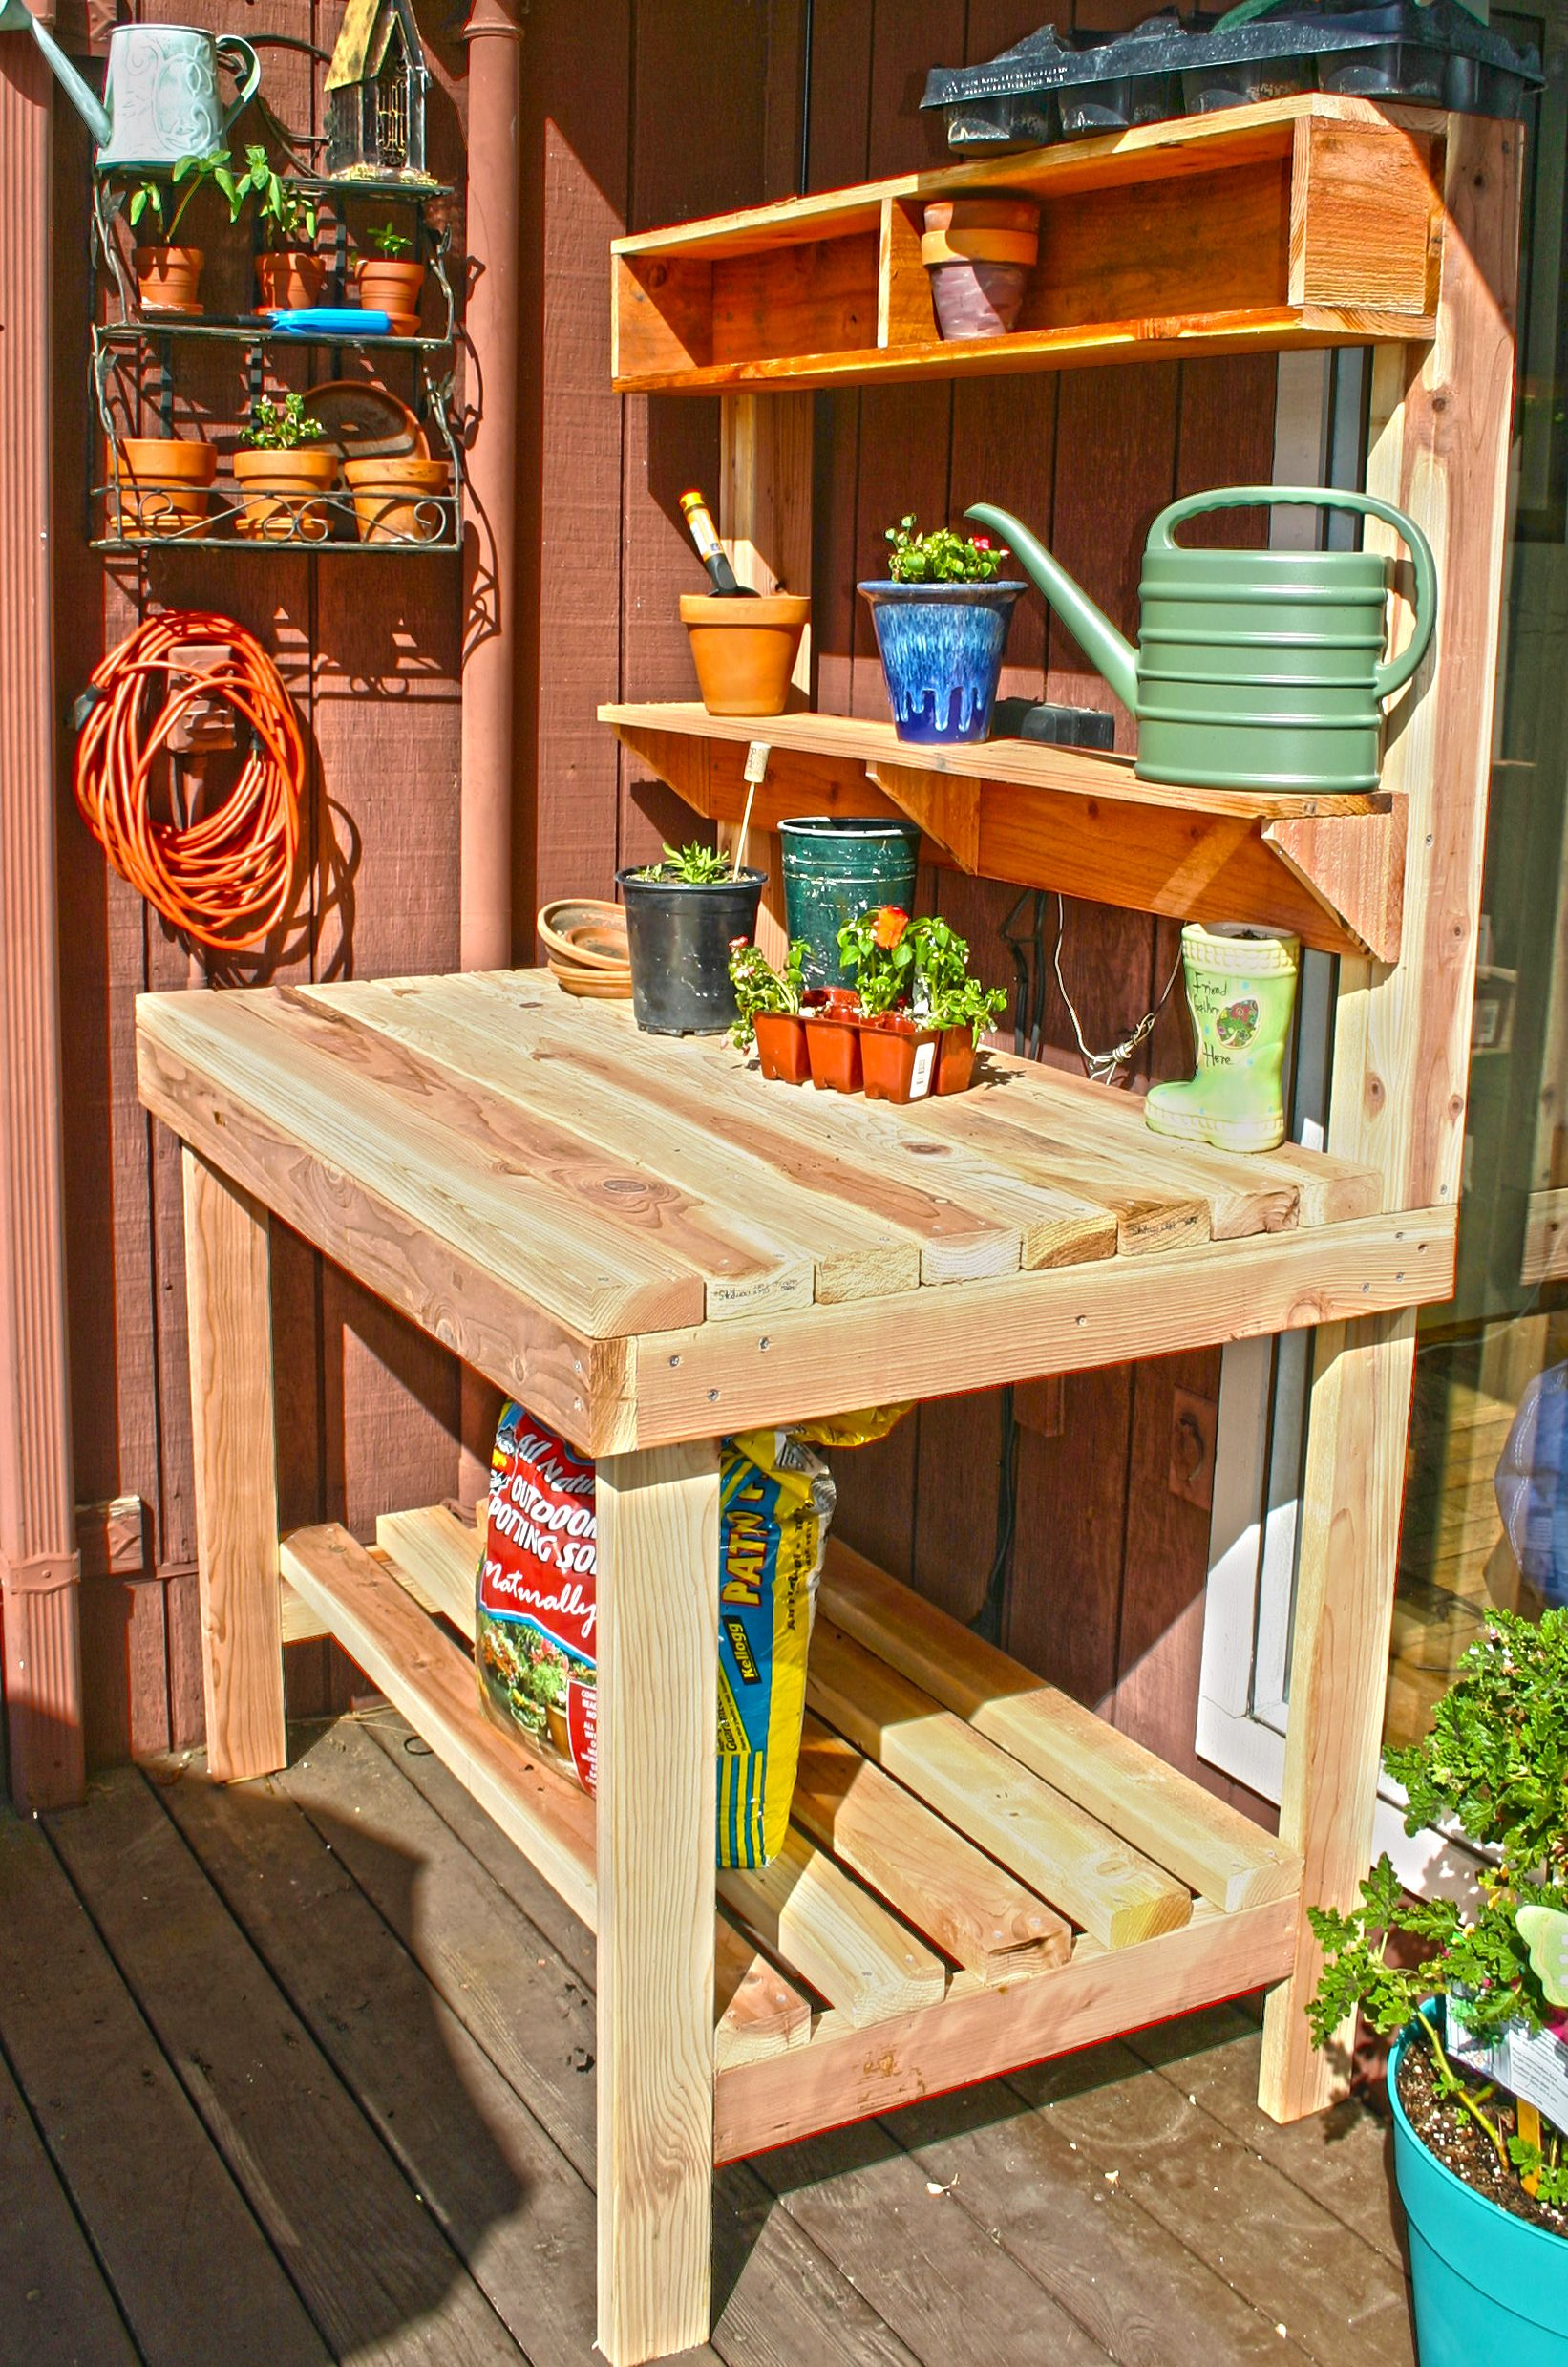 economypottingtable n sheds chalets table product economy potting